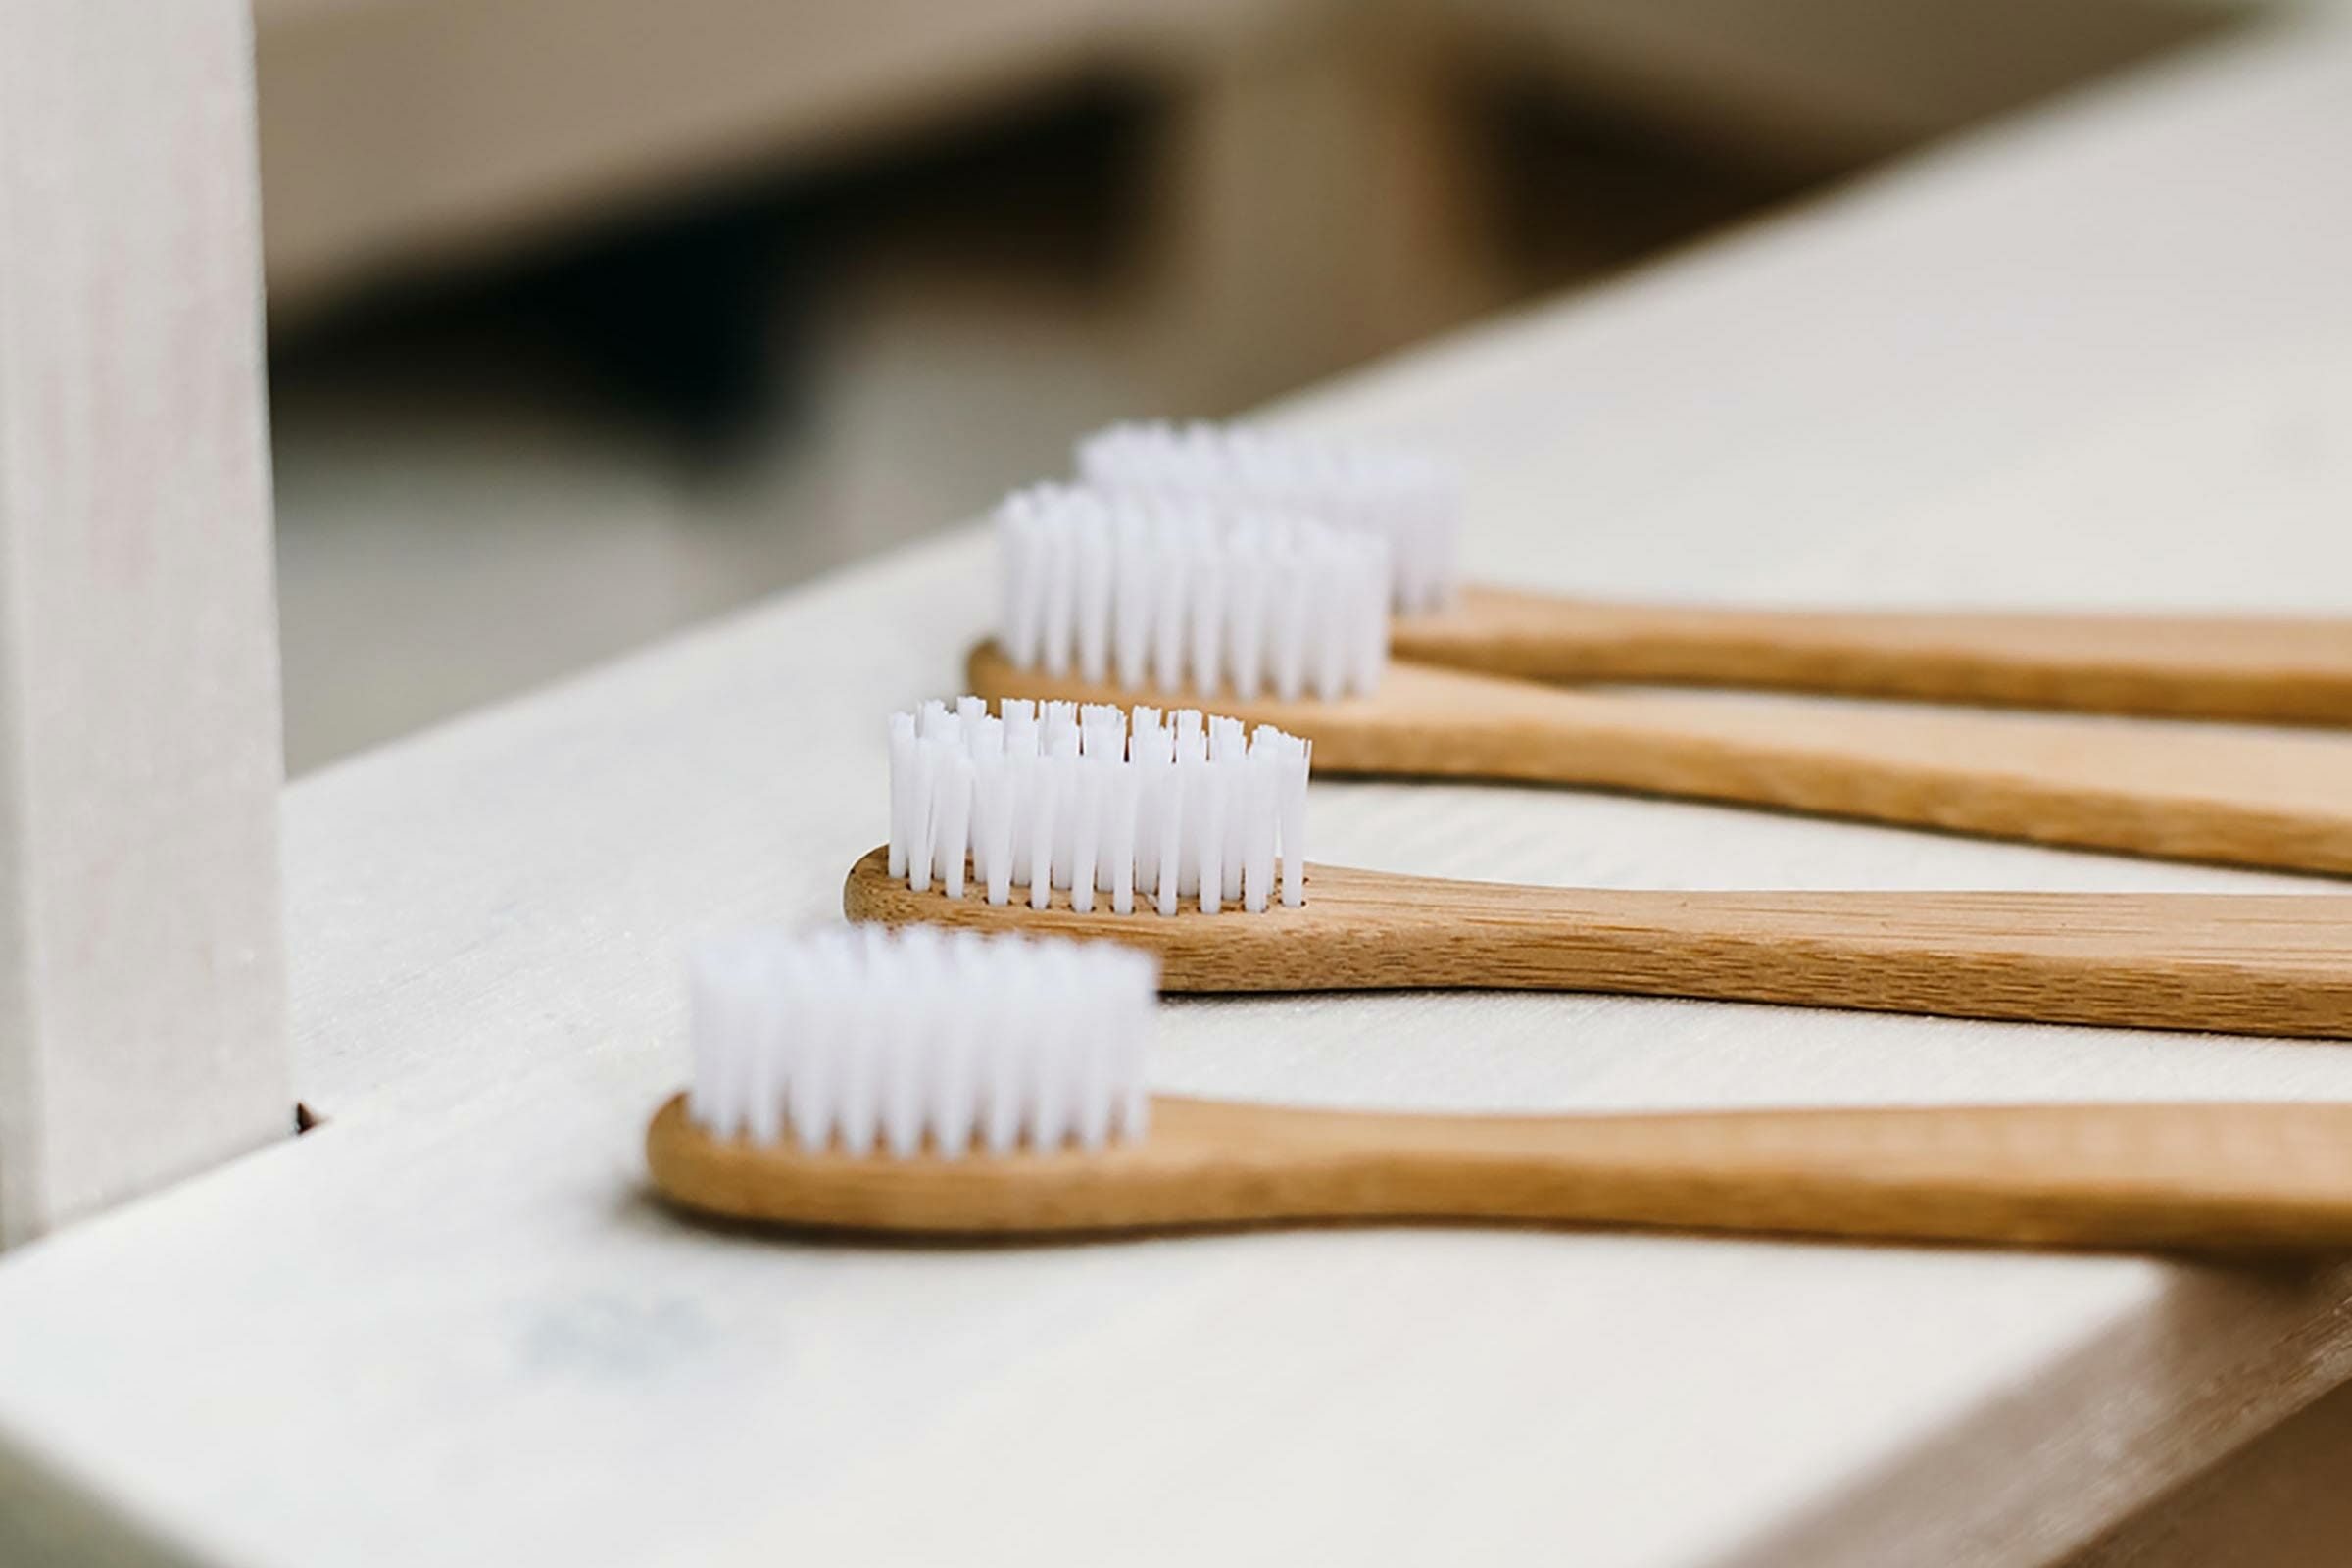 wooden toothbrushes with white bristles